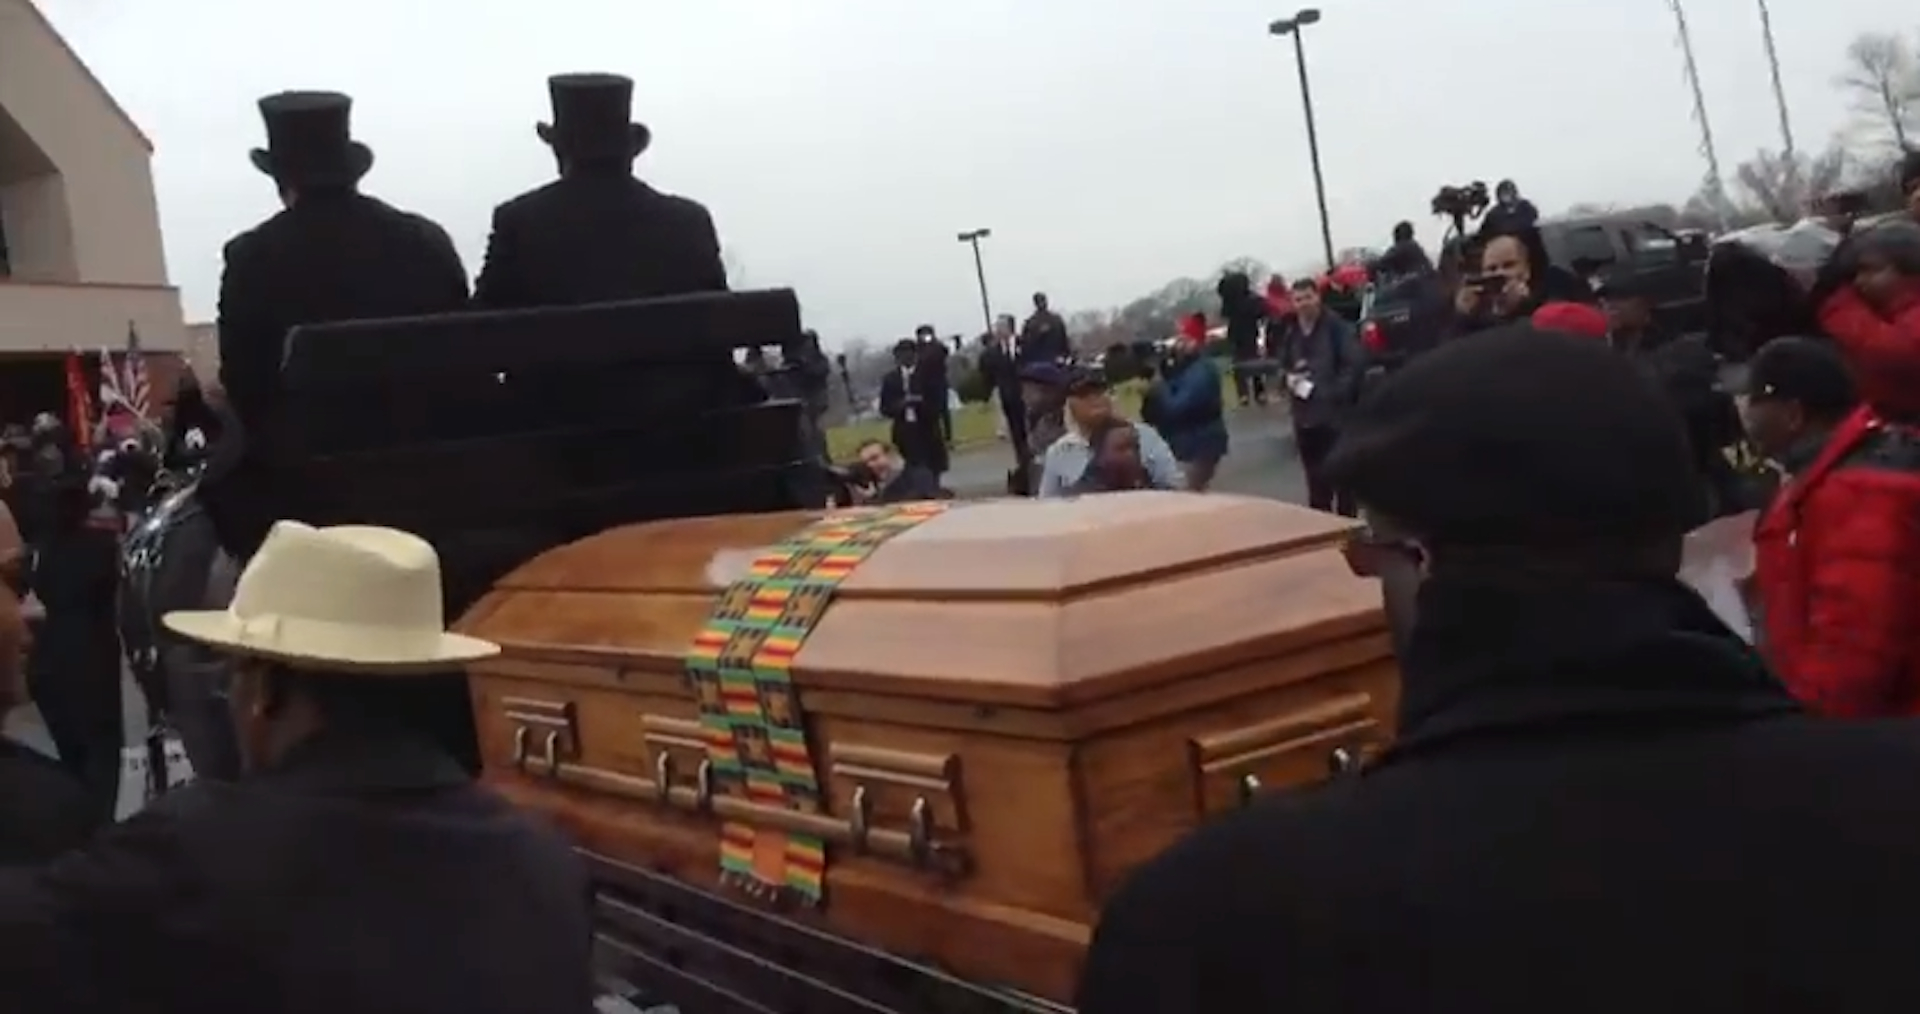 Gallery images and information selena funeral open casket